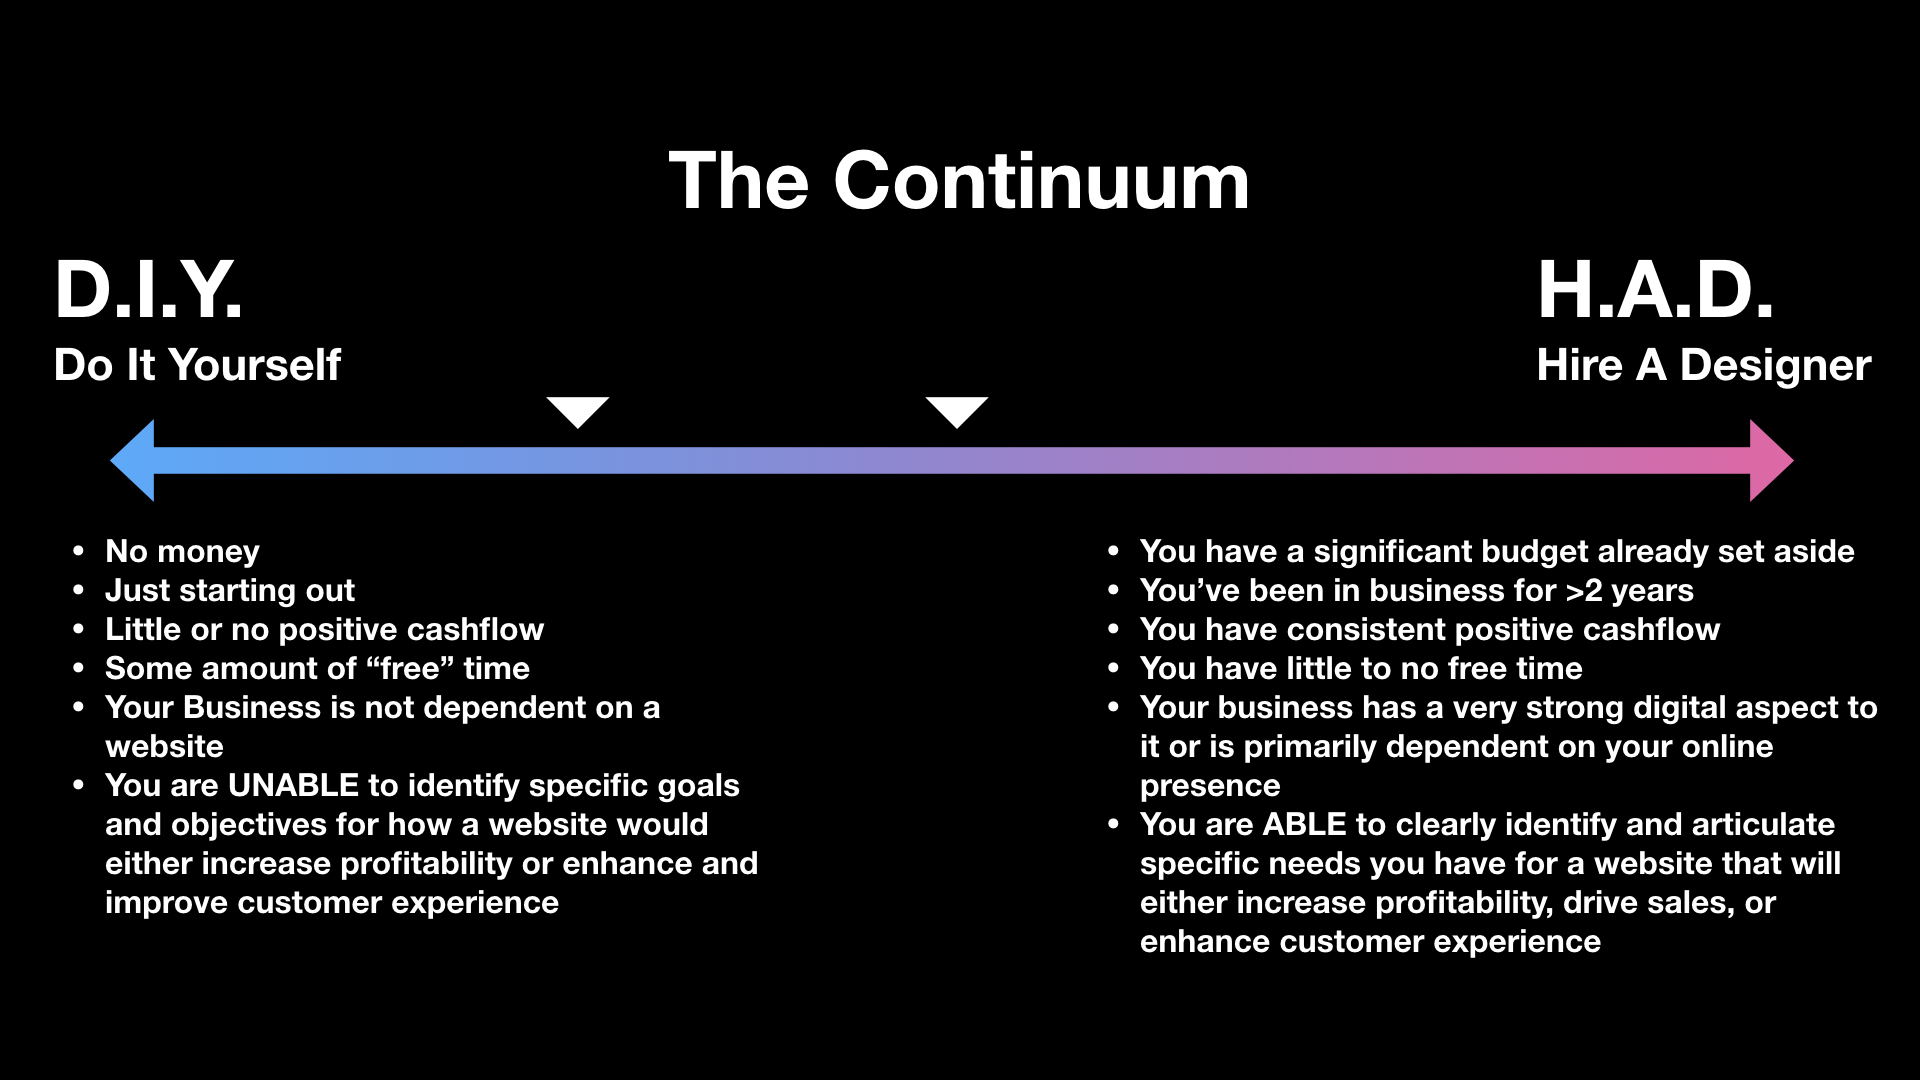 The continuum diy website or hire a designer the more of the these that are true the further to the left you are do it yourself solutioingenieria